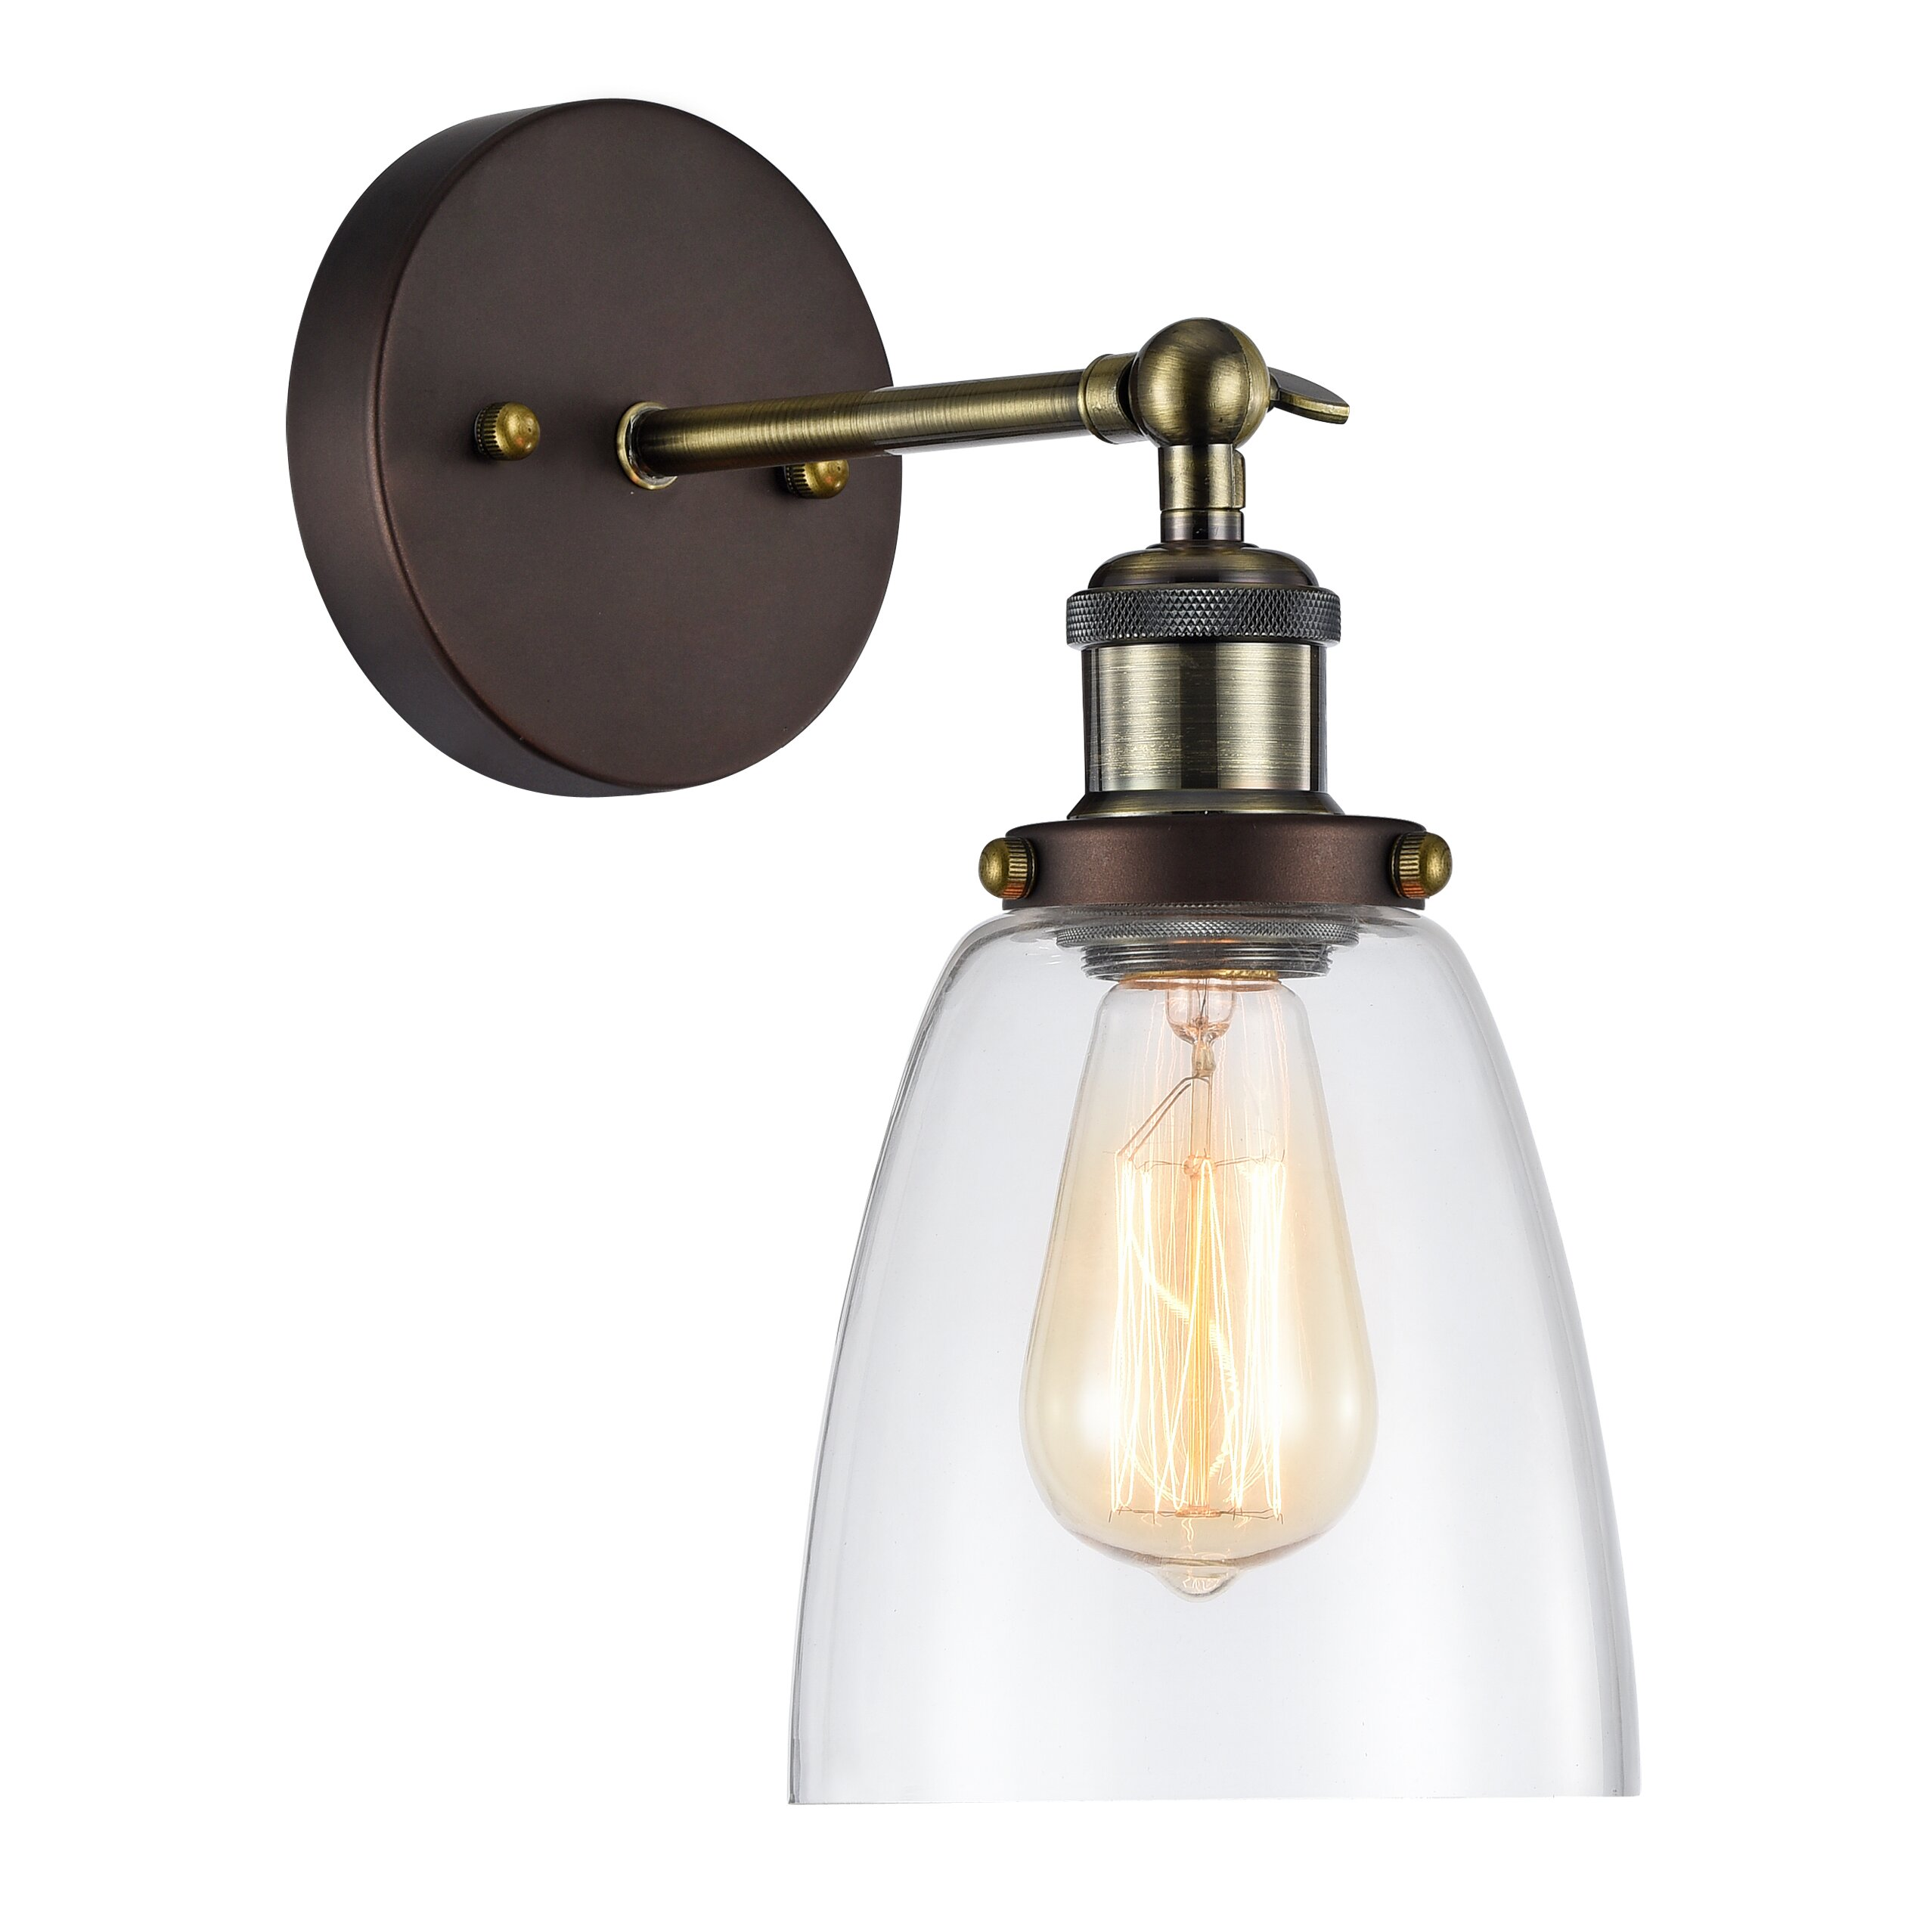 Laurel Foundry Modern Farmhouse Bouvet 1 Light Wall Sconce & Reviews